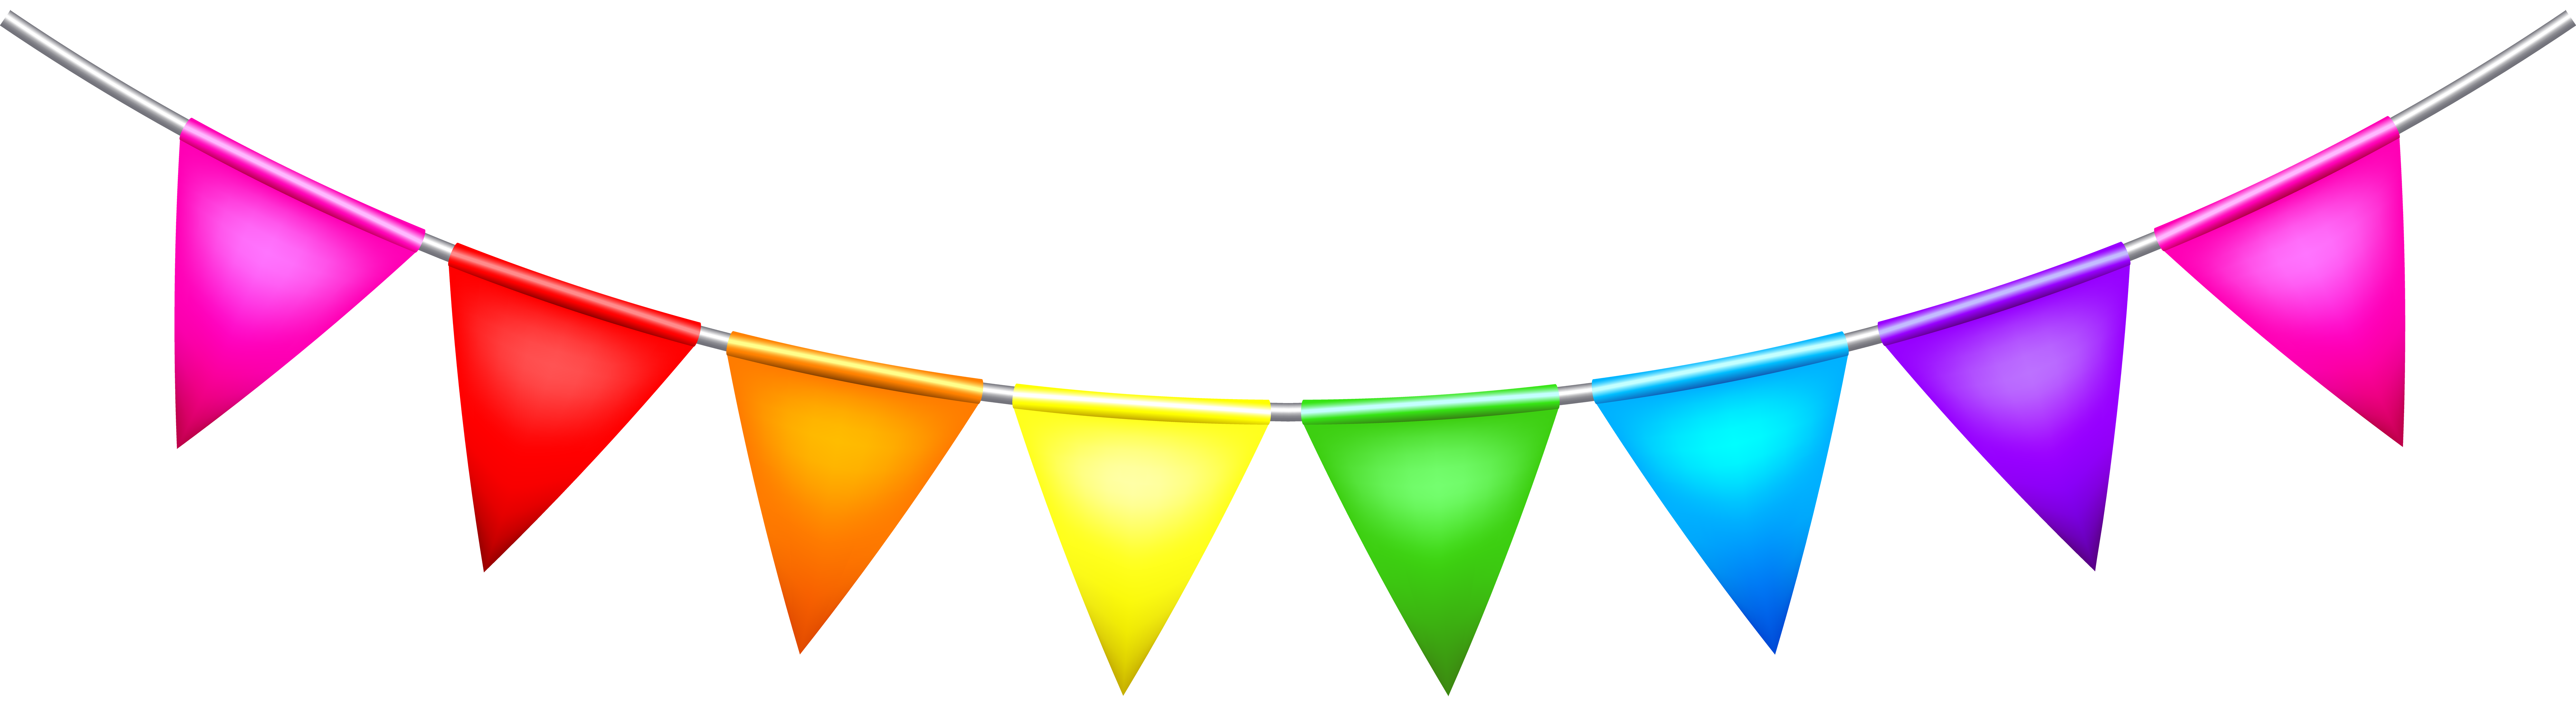 Party png clip art. Birthday clipart streamer